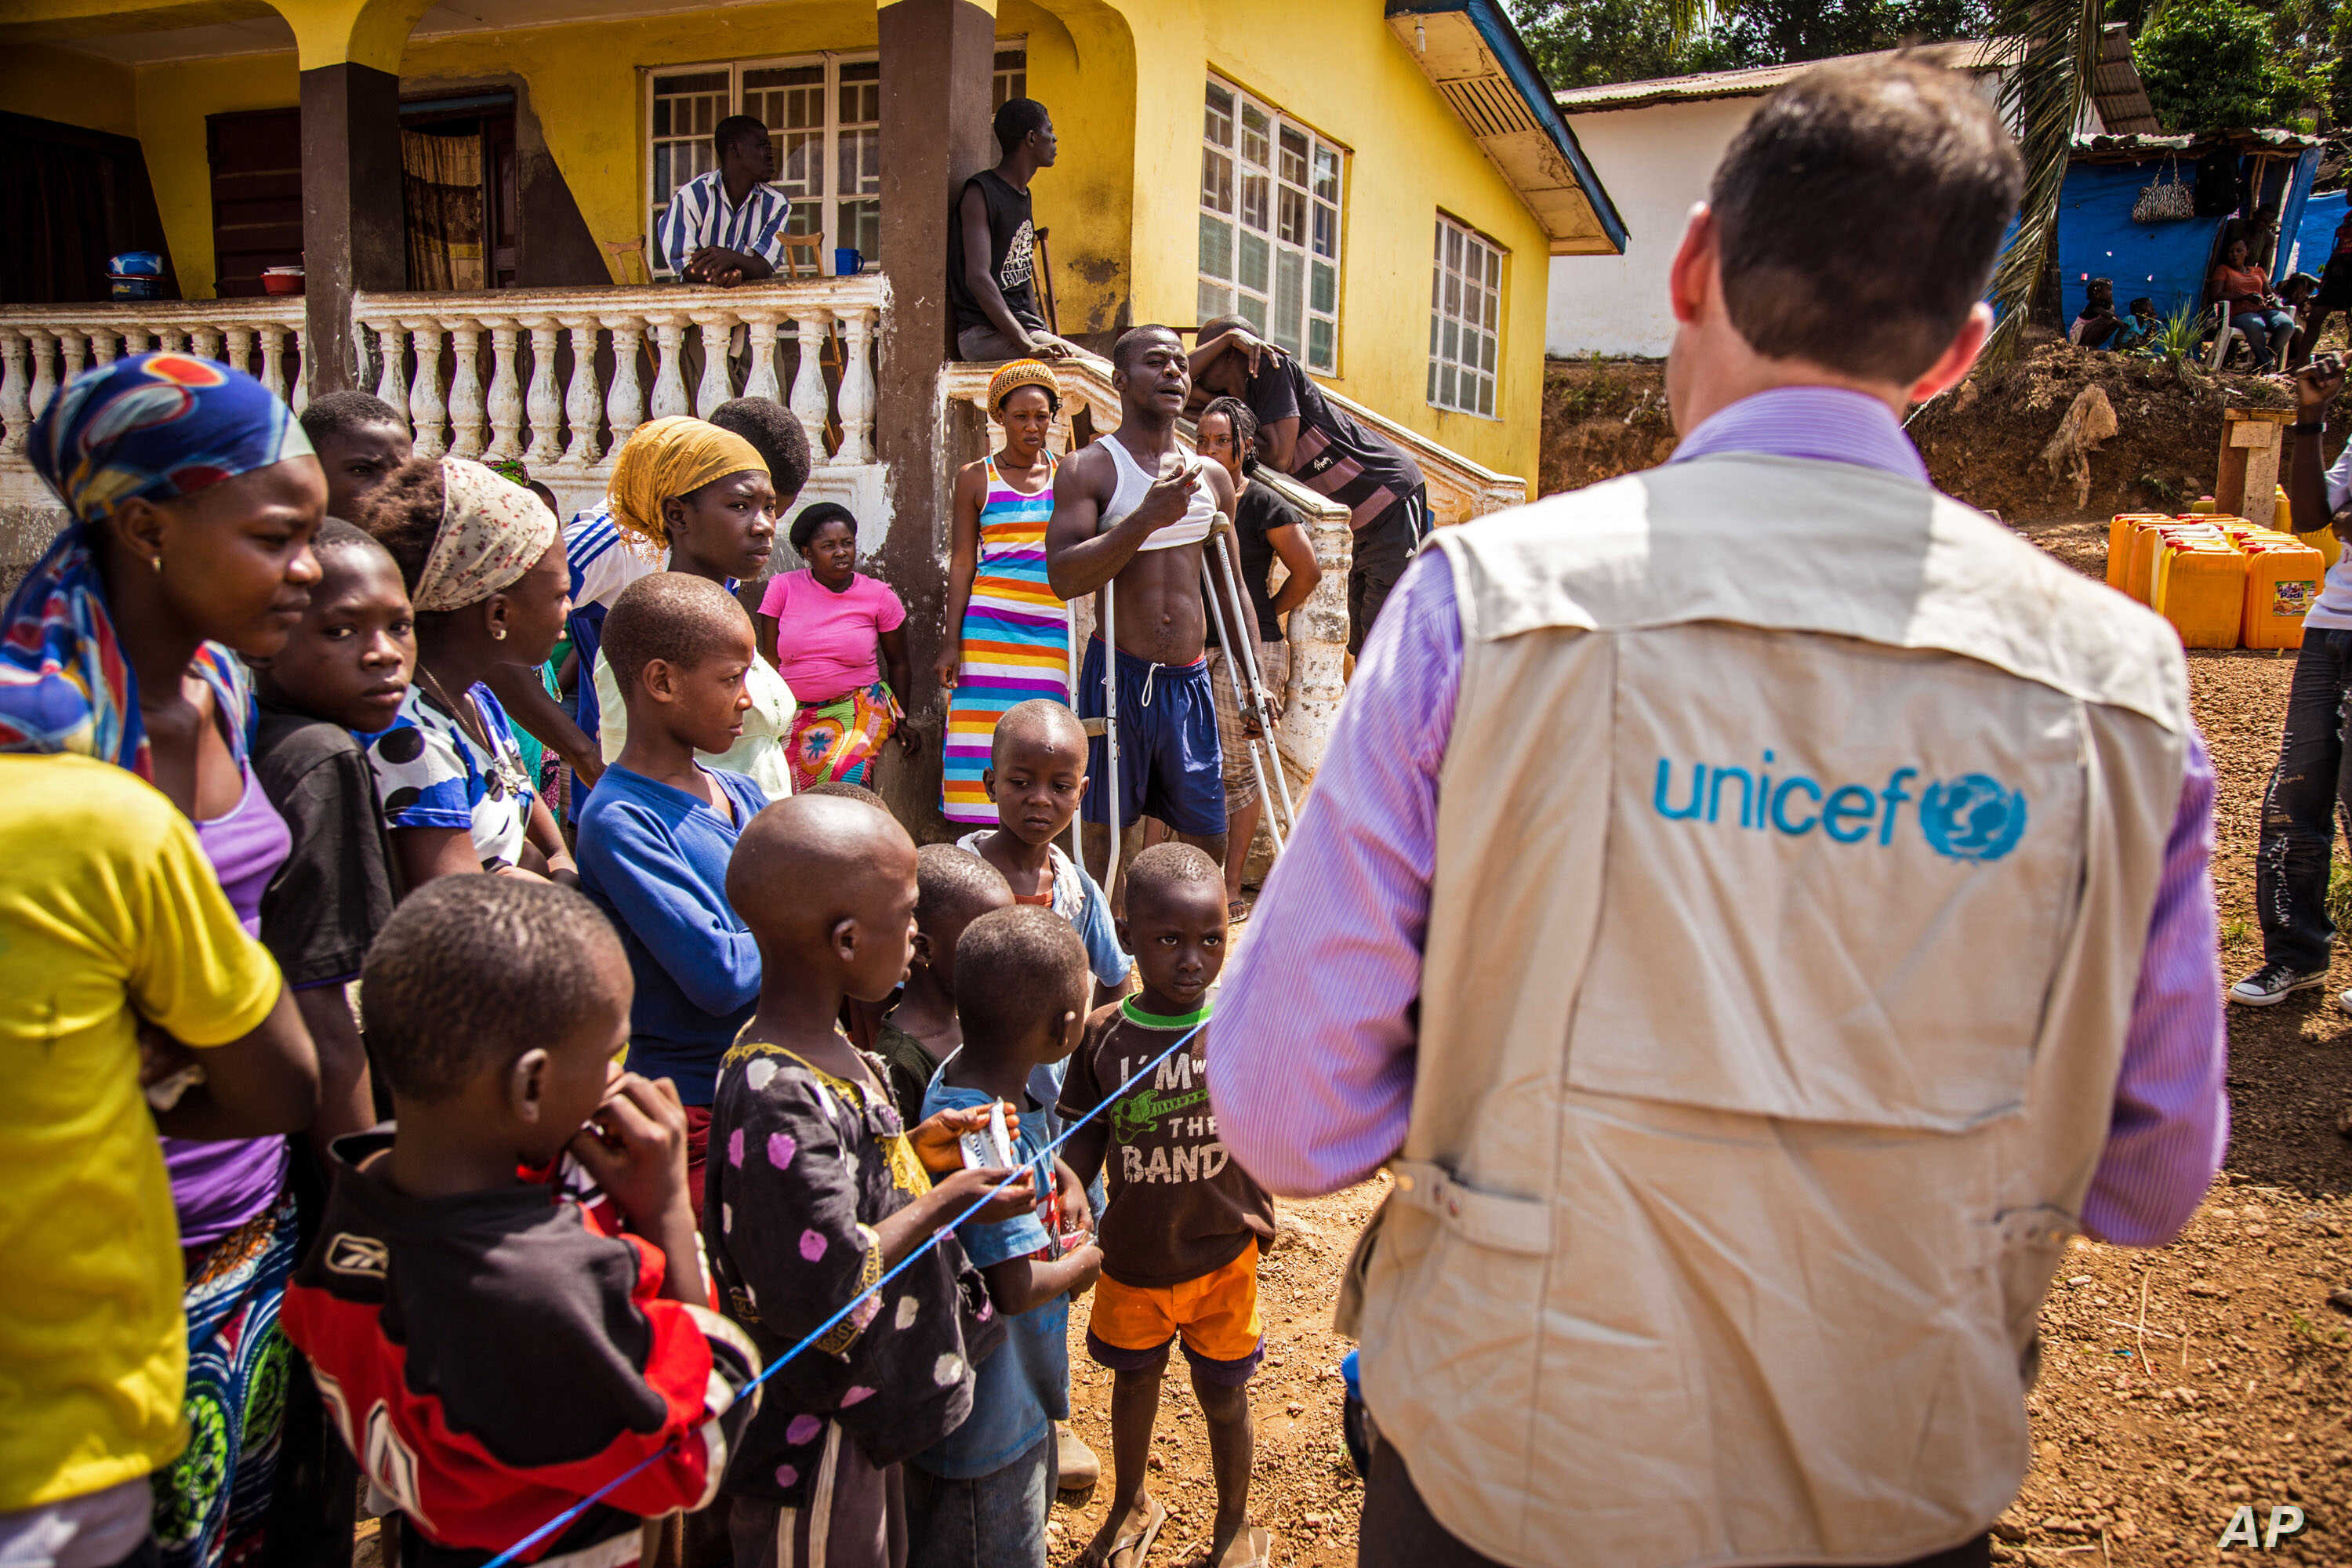 A UNICEF aid worker visits a home in Freetown, Sierra Leone, that has been quarantined for 21 days because of the Ebola virus, Feb. 26,  2015.